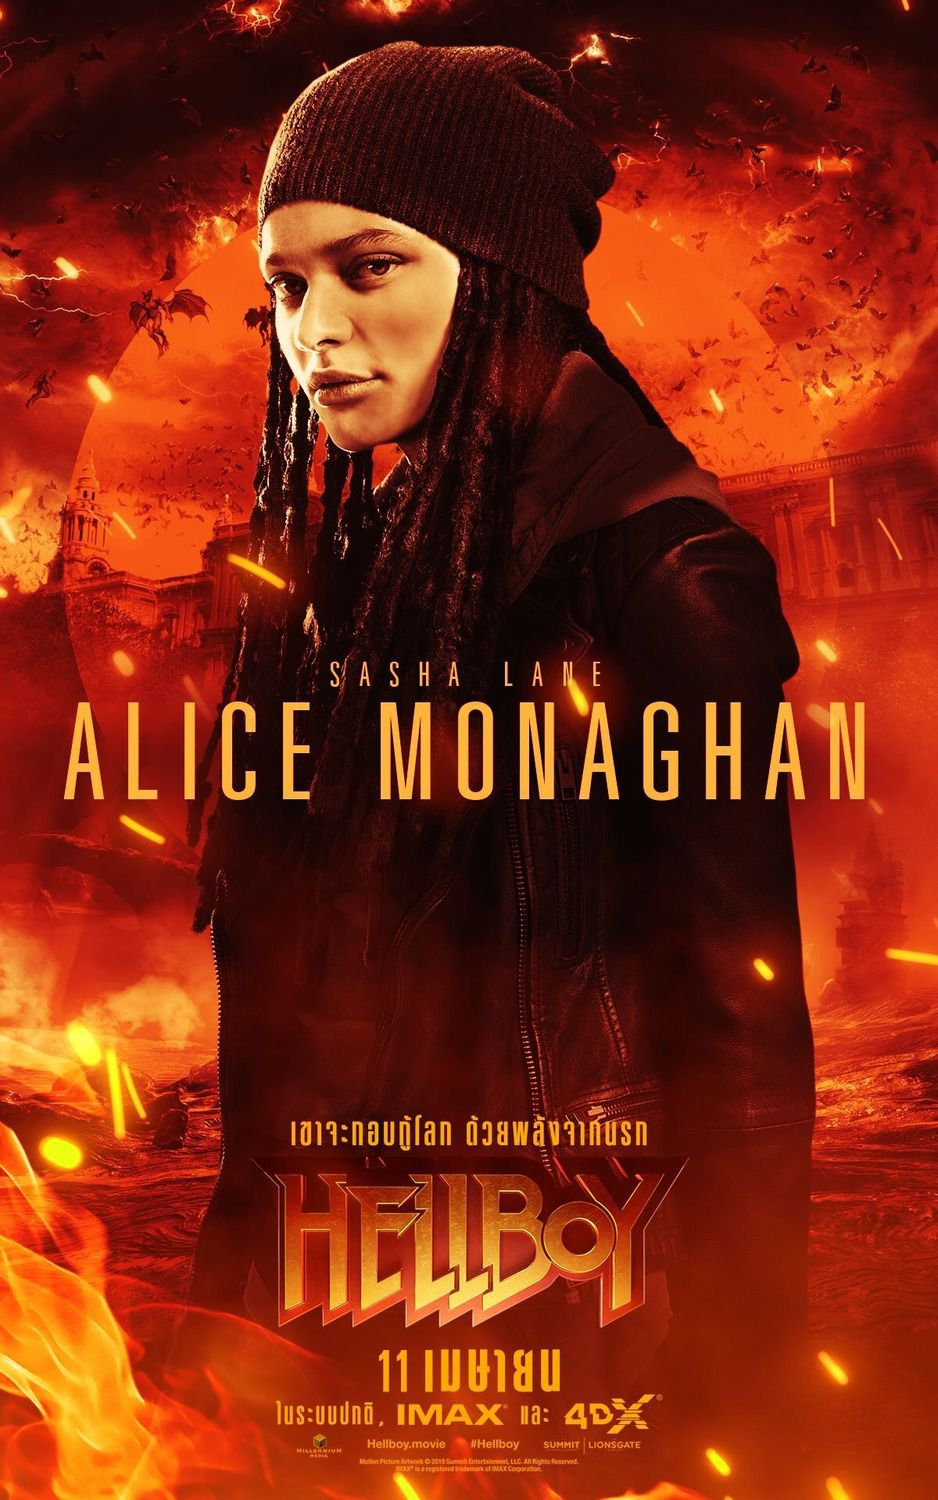 Sasha Lane as Alice Monaghan